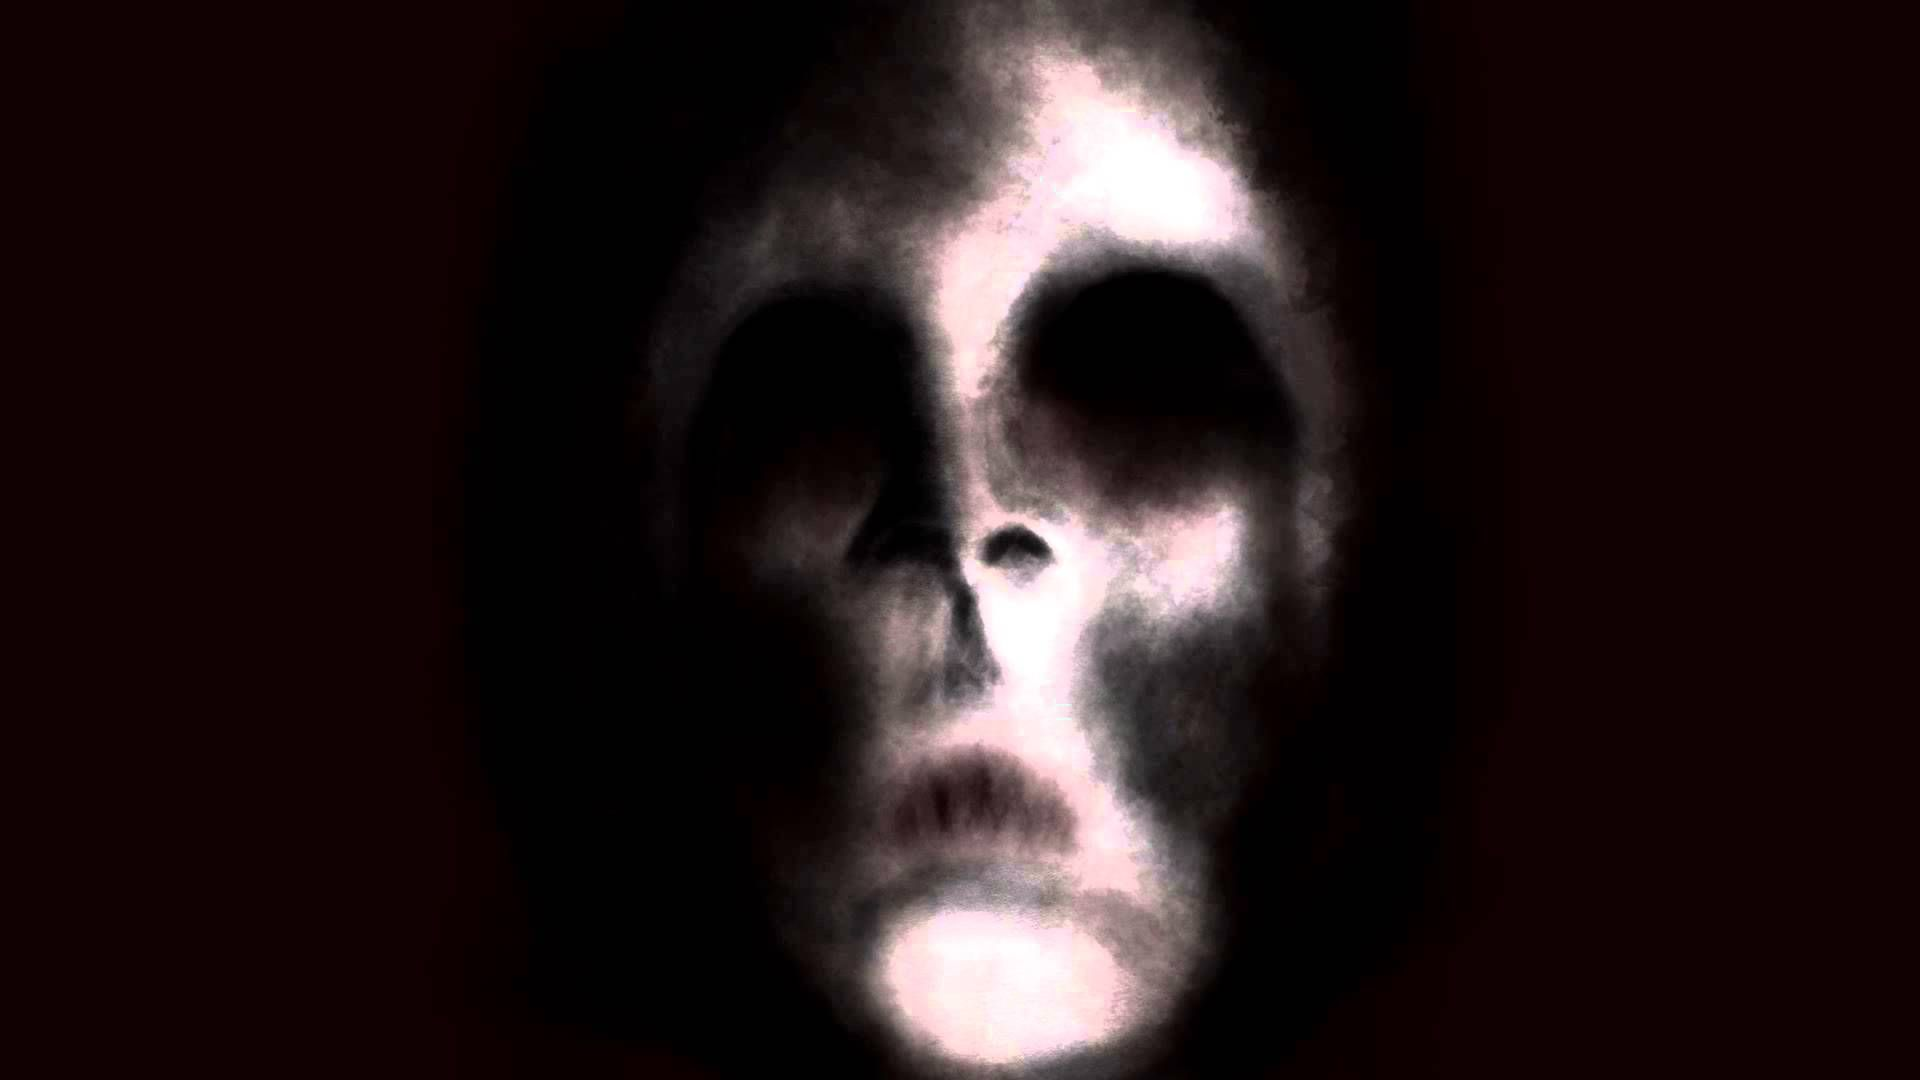 Amazing Scary And Creepy 3d Holophonic Sound Ilusion Use Headphones Scary Faces Eerie Art Creepy